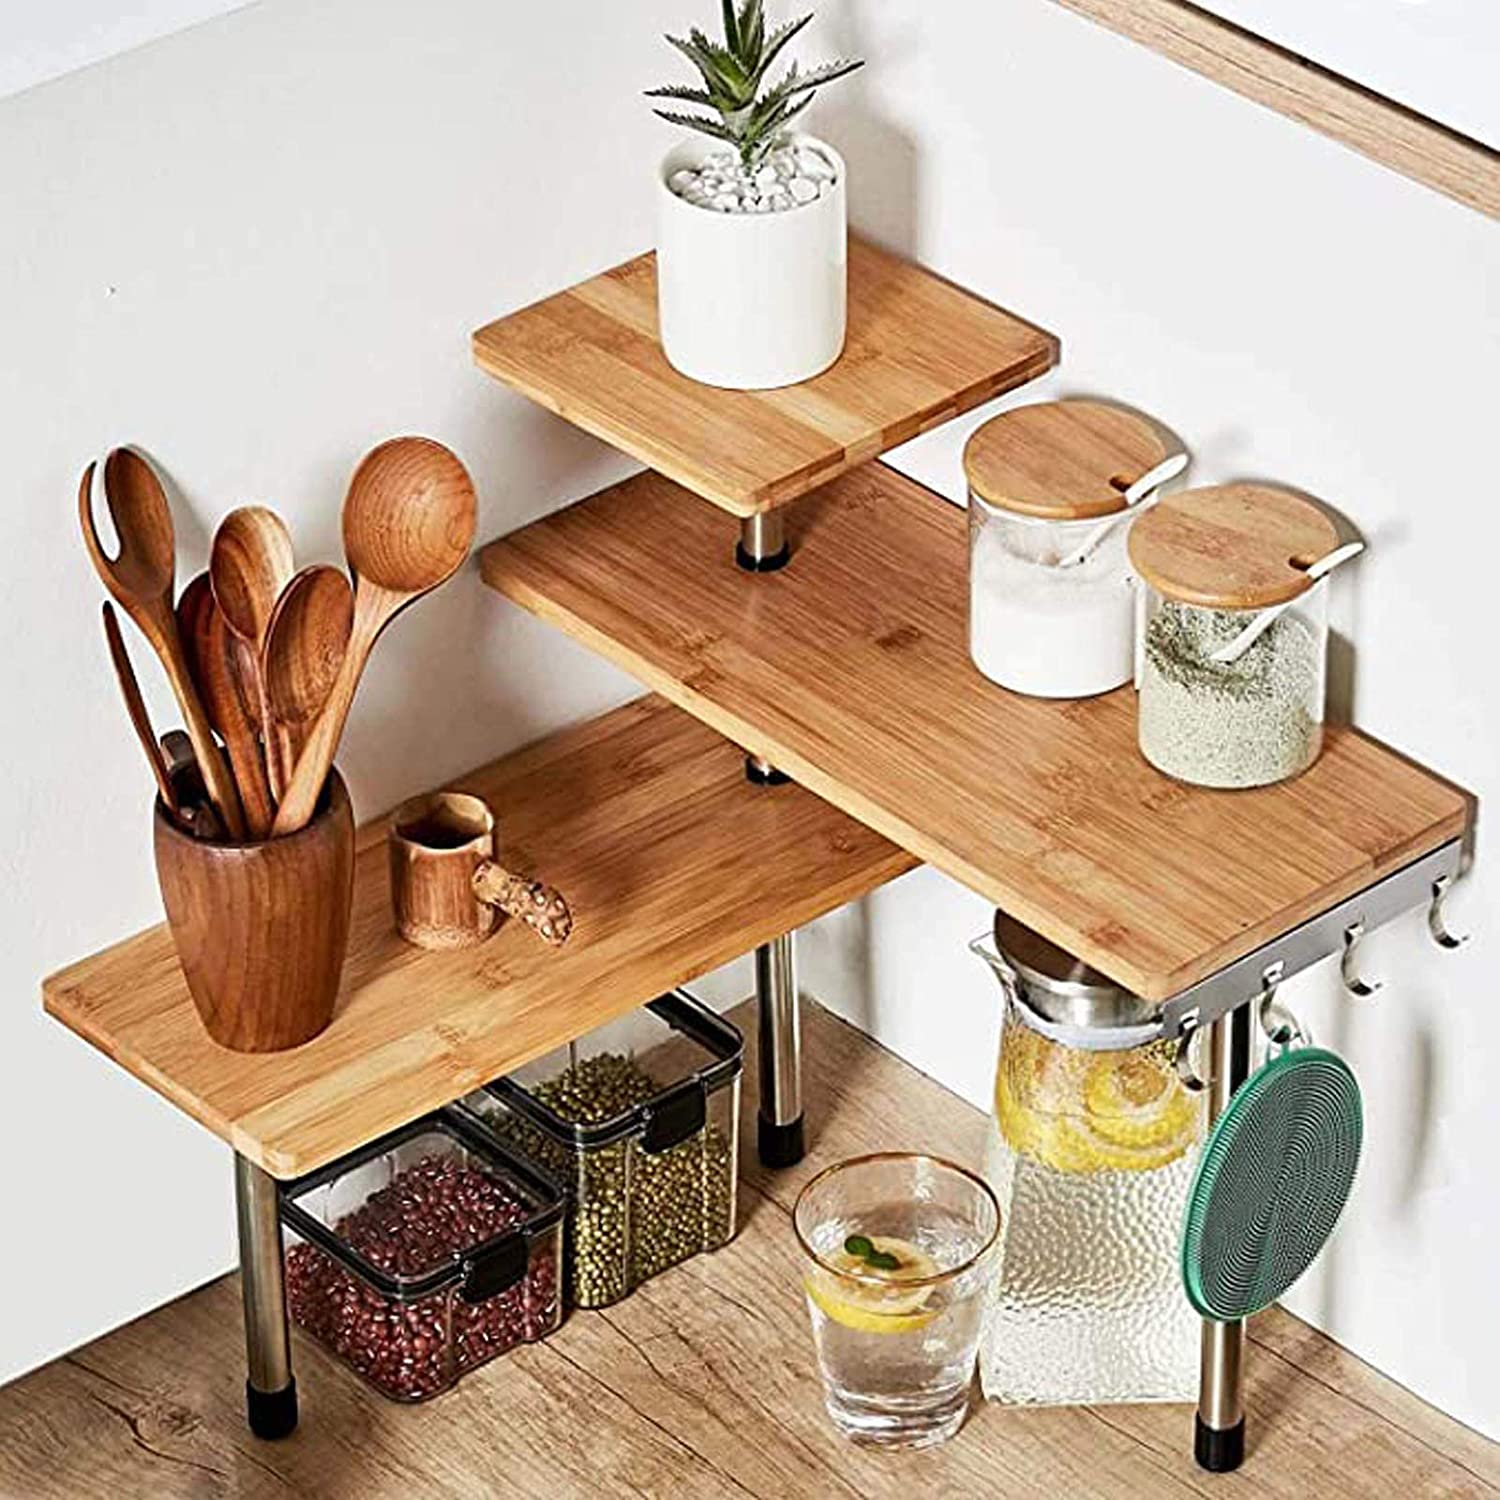 HYNAWIN 3 Tier Corner Shelf Bamboo & Metal Storage Spice Rack-Desk Bookshelf Display Shelves Space Saving Organizer -Adjustable Rack for Kitchen,Bedroom, Office-Creative Home Décor with Hooks: Furniture & Decor